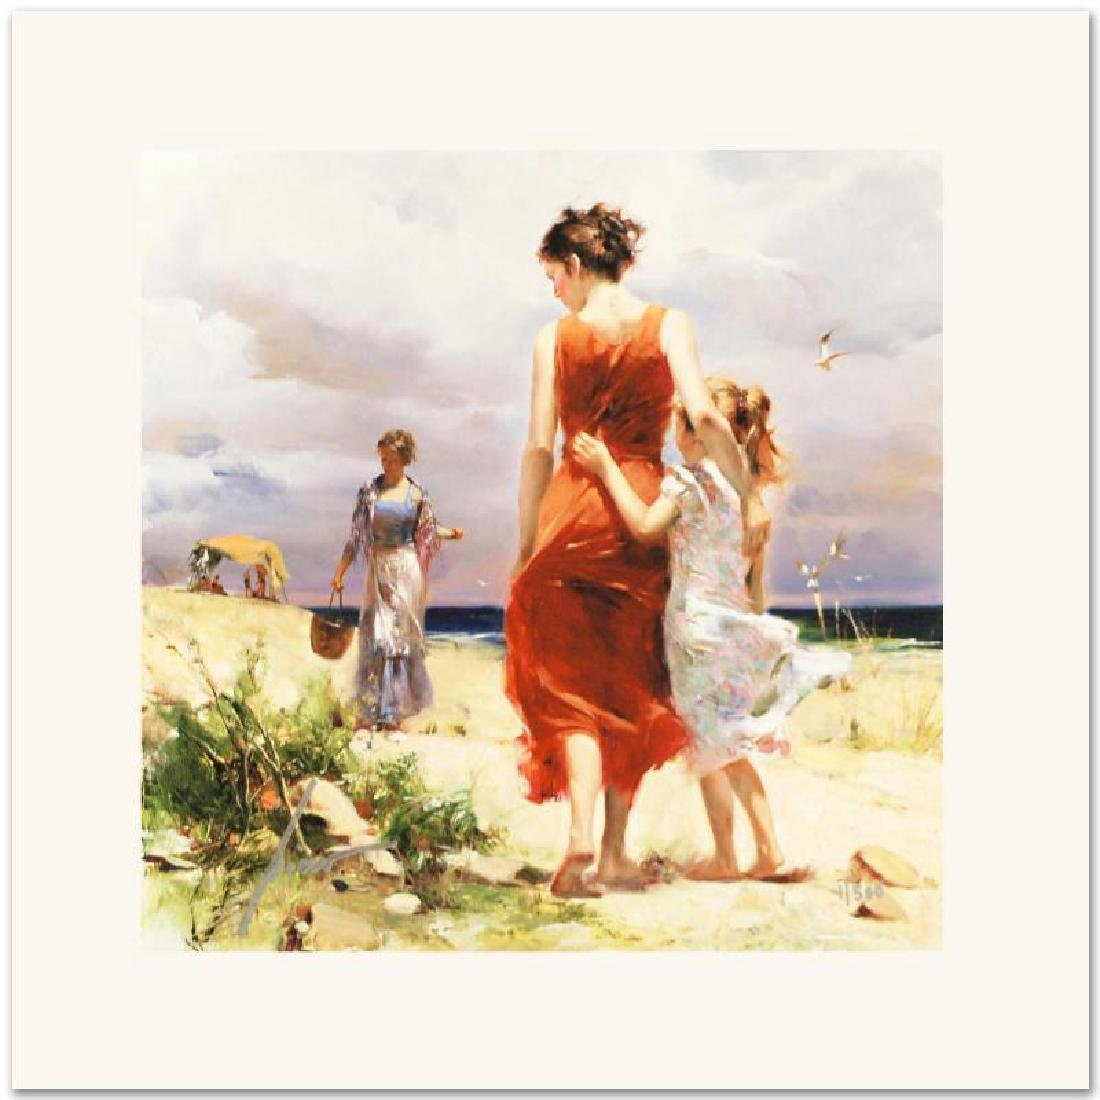 Breezy Days Limited Edition Giclee on Canvas by Pino